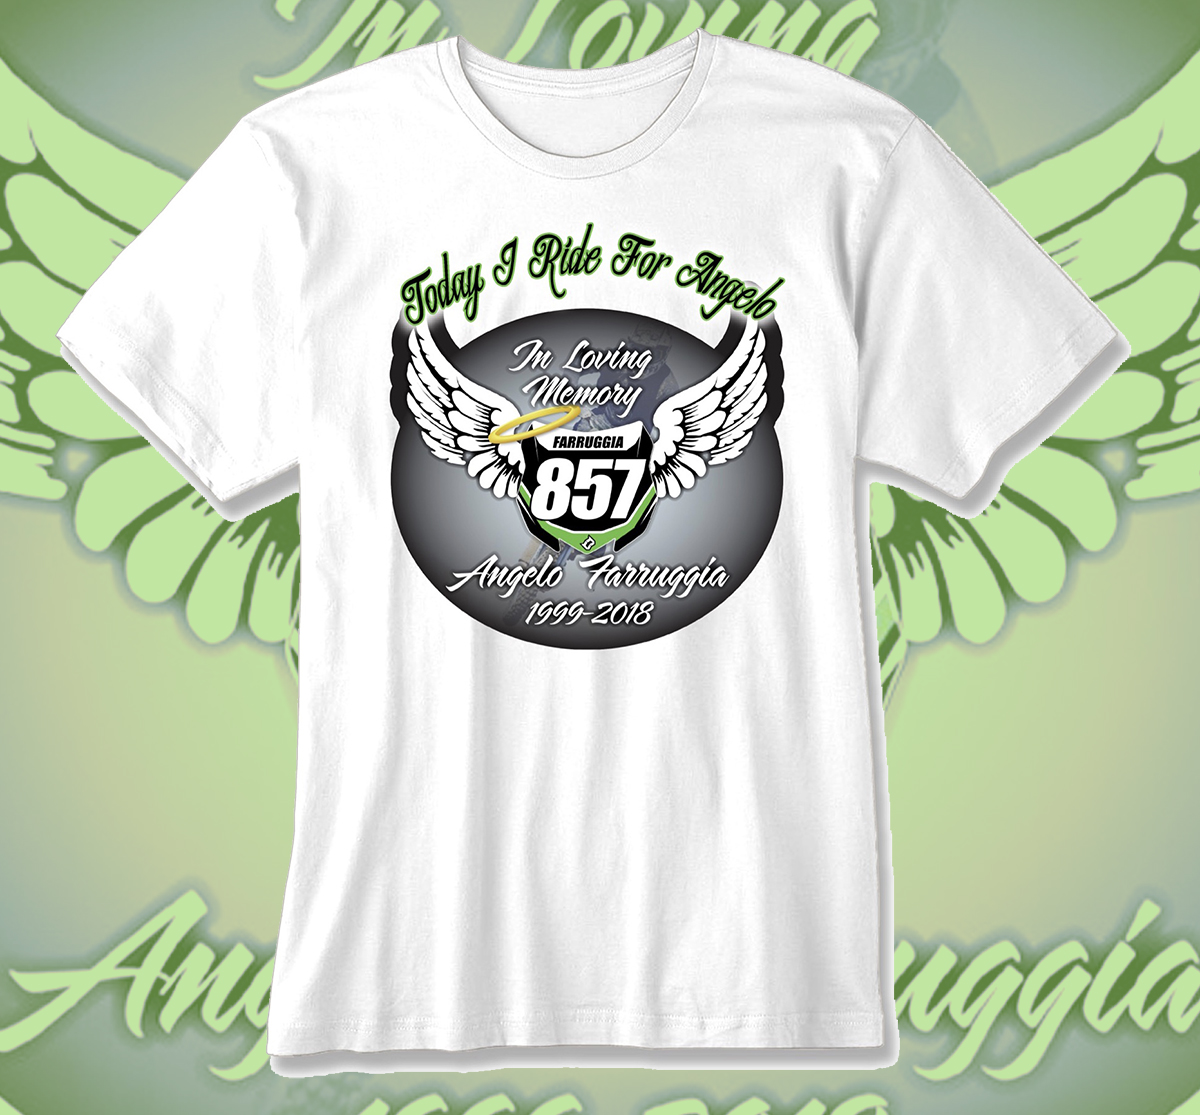 2018 Round 9 Angelo Farruggia Memorial T-Shirt